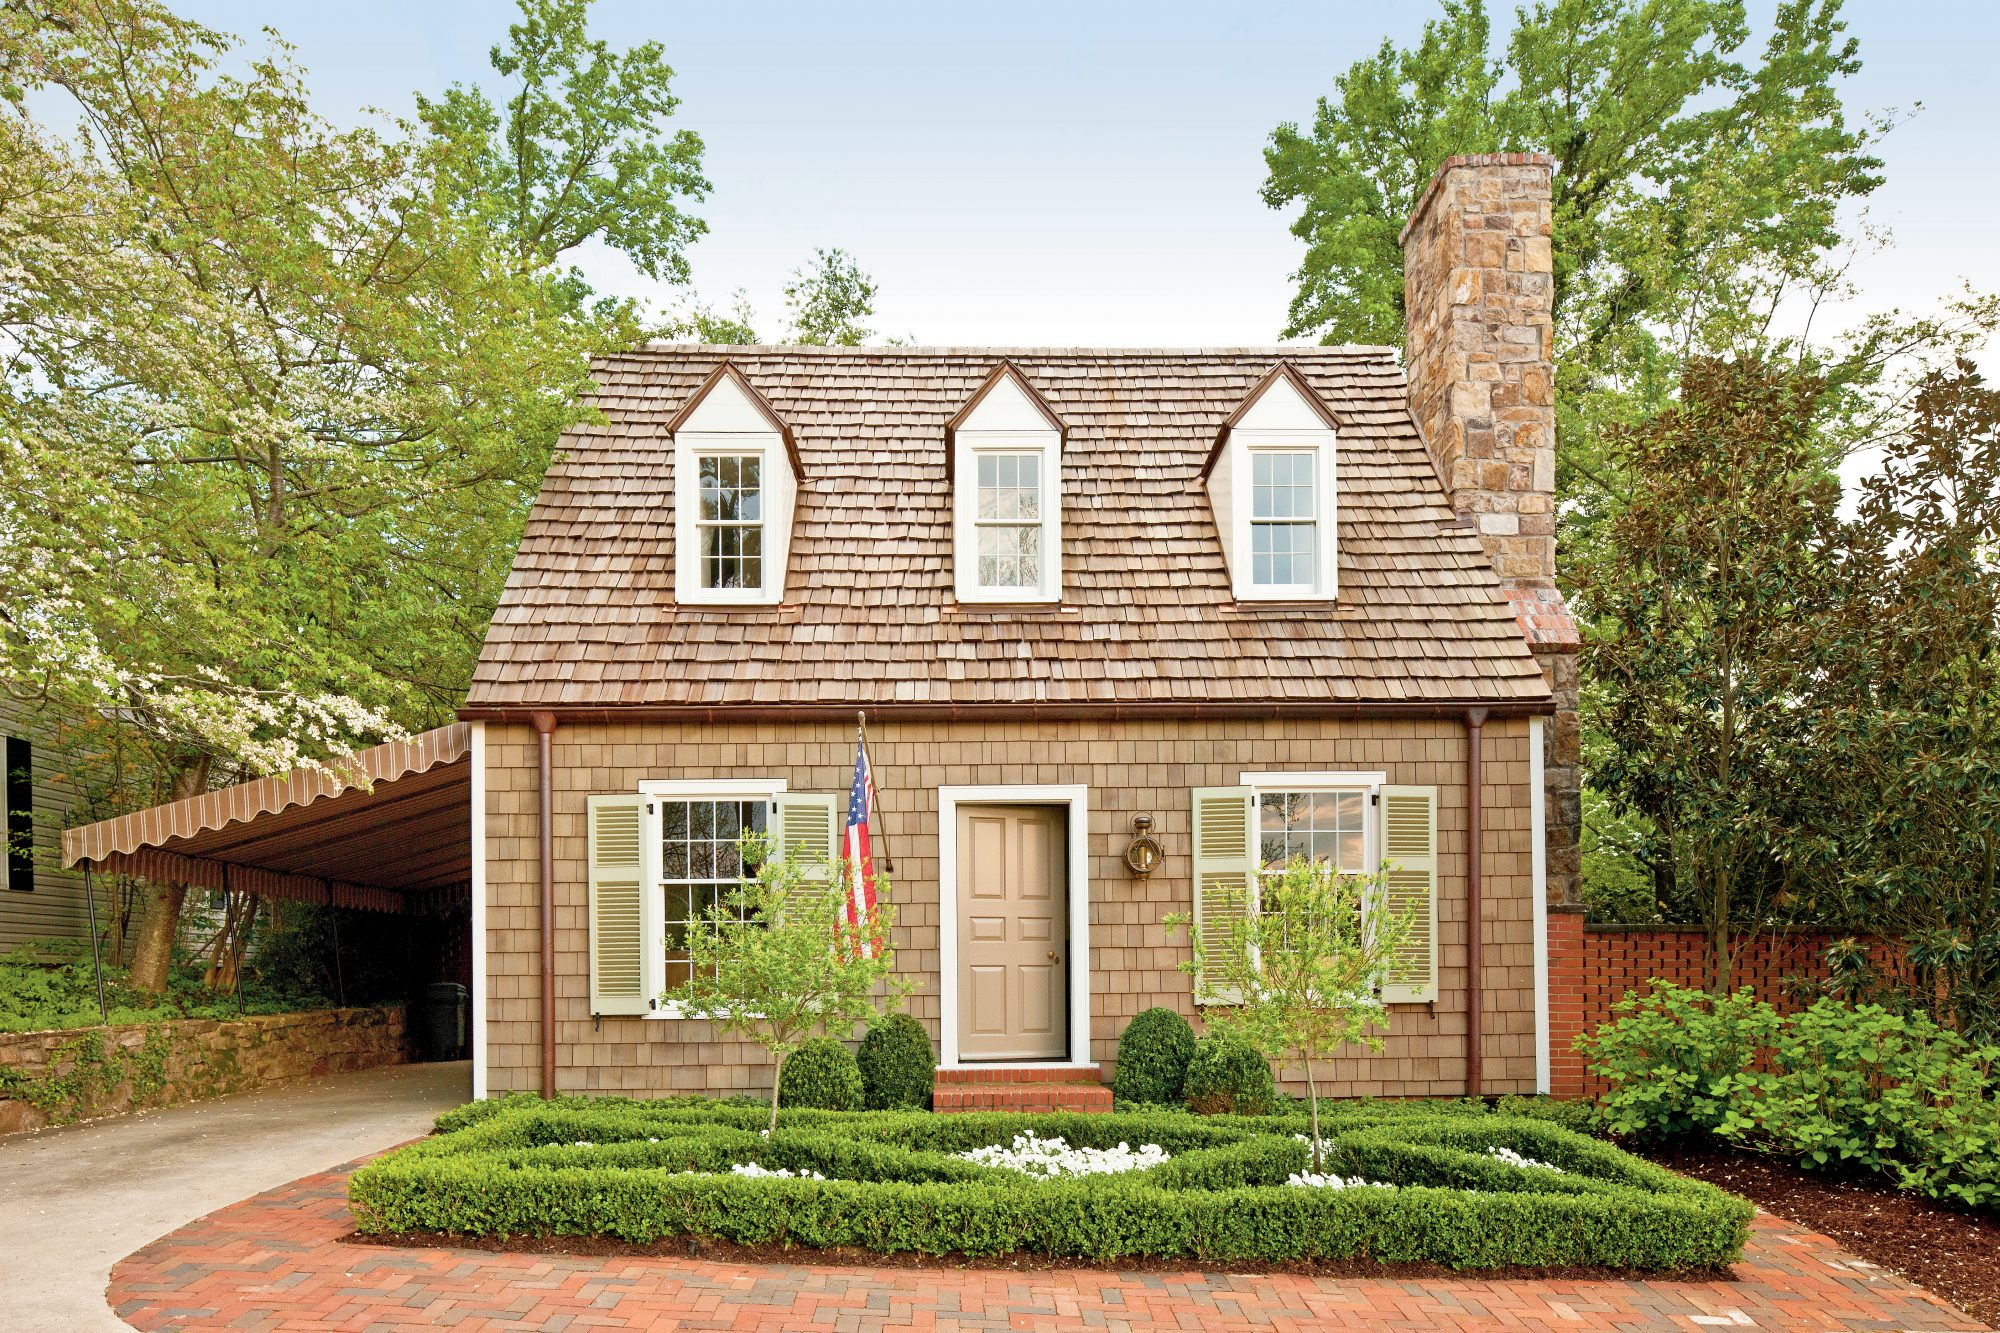 Colonial Williamsburg: After